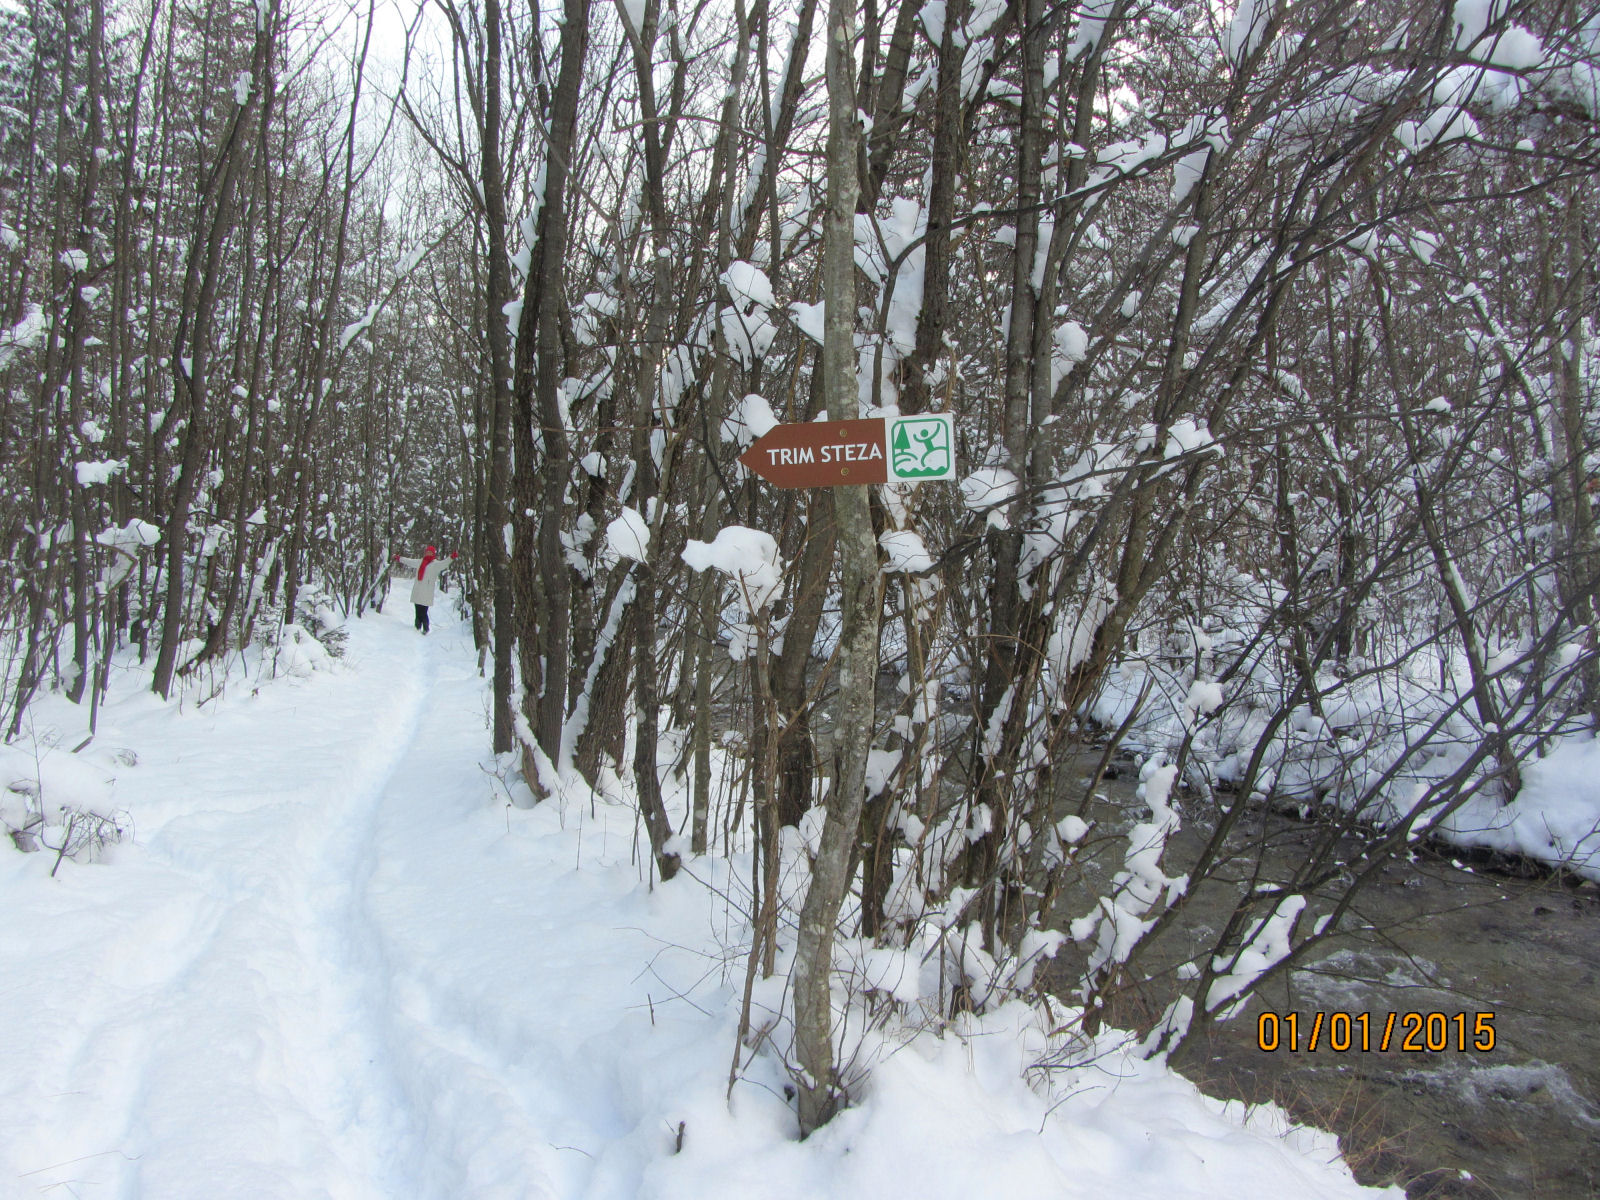 Trim trail of the Zavrsnica recreation park in winter